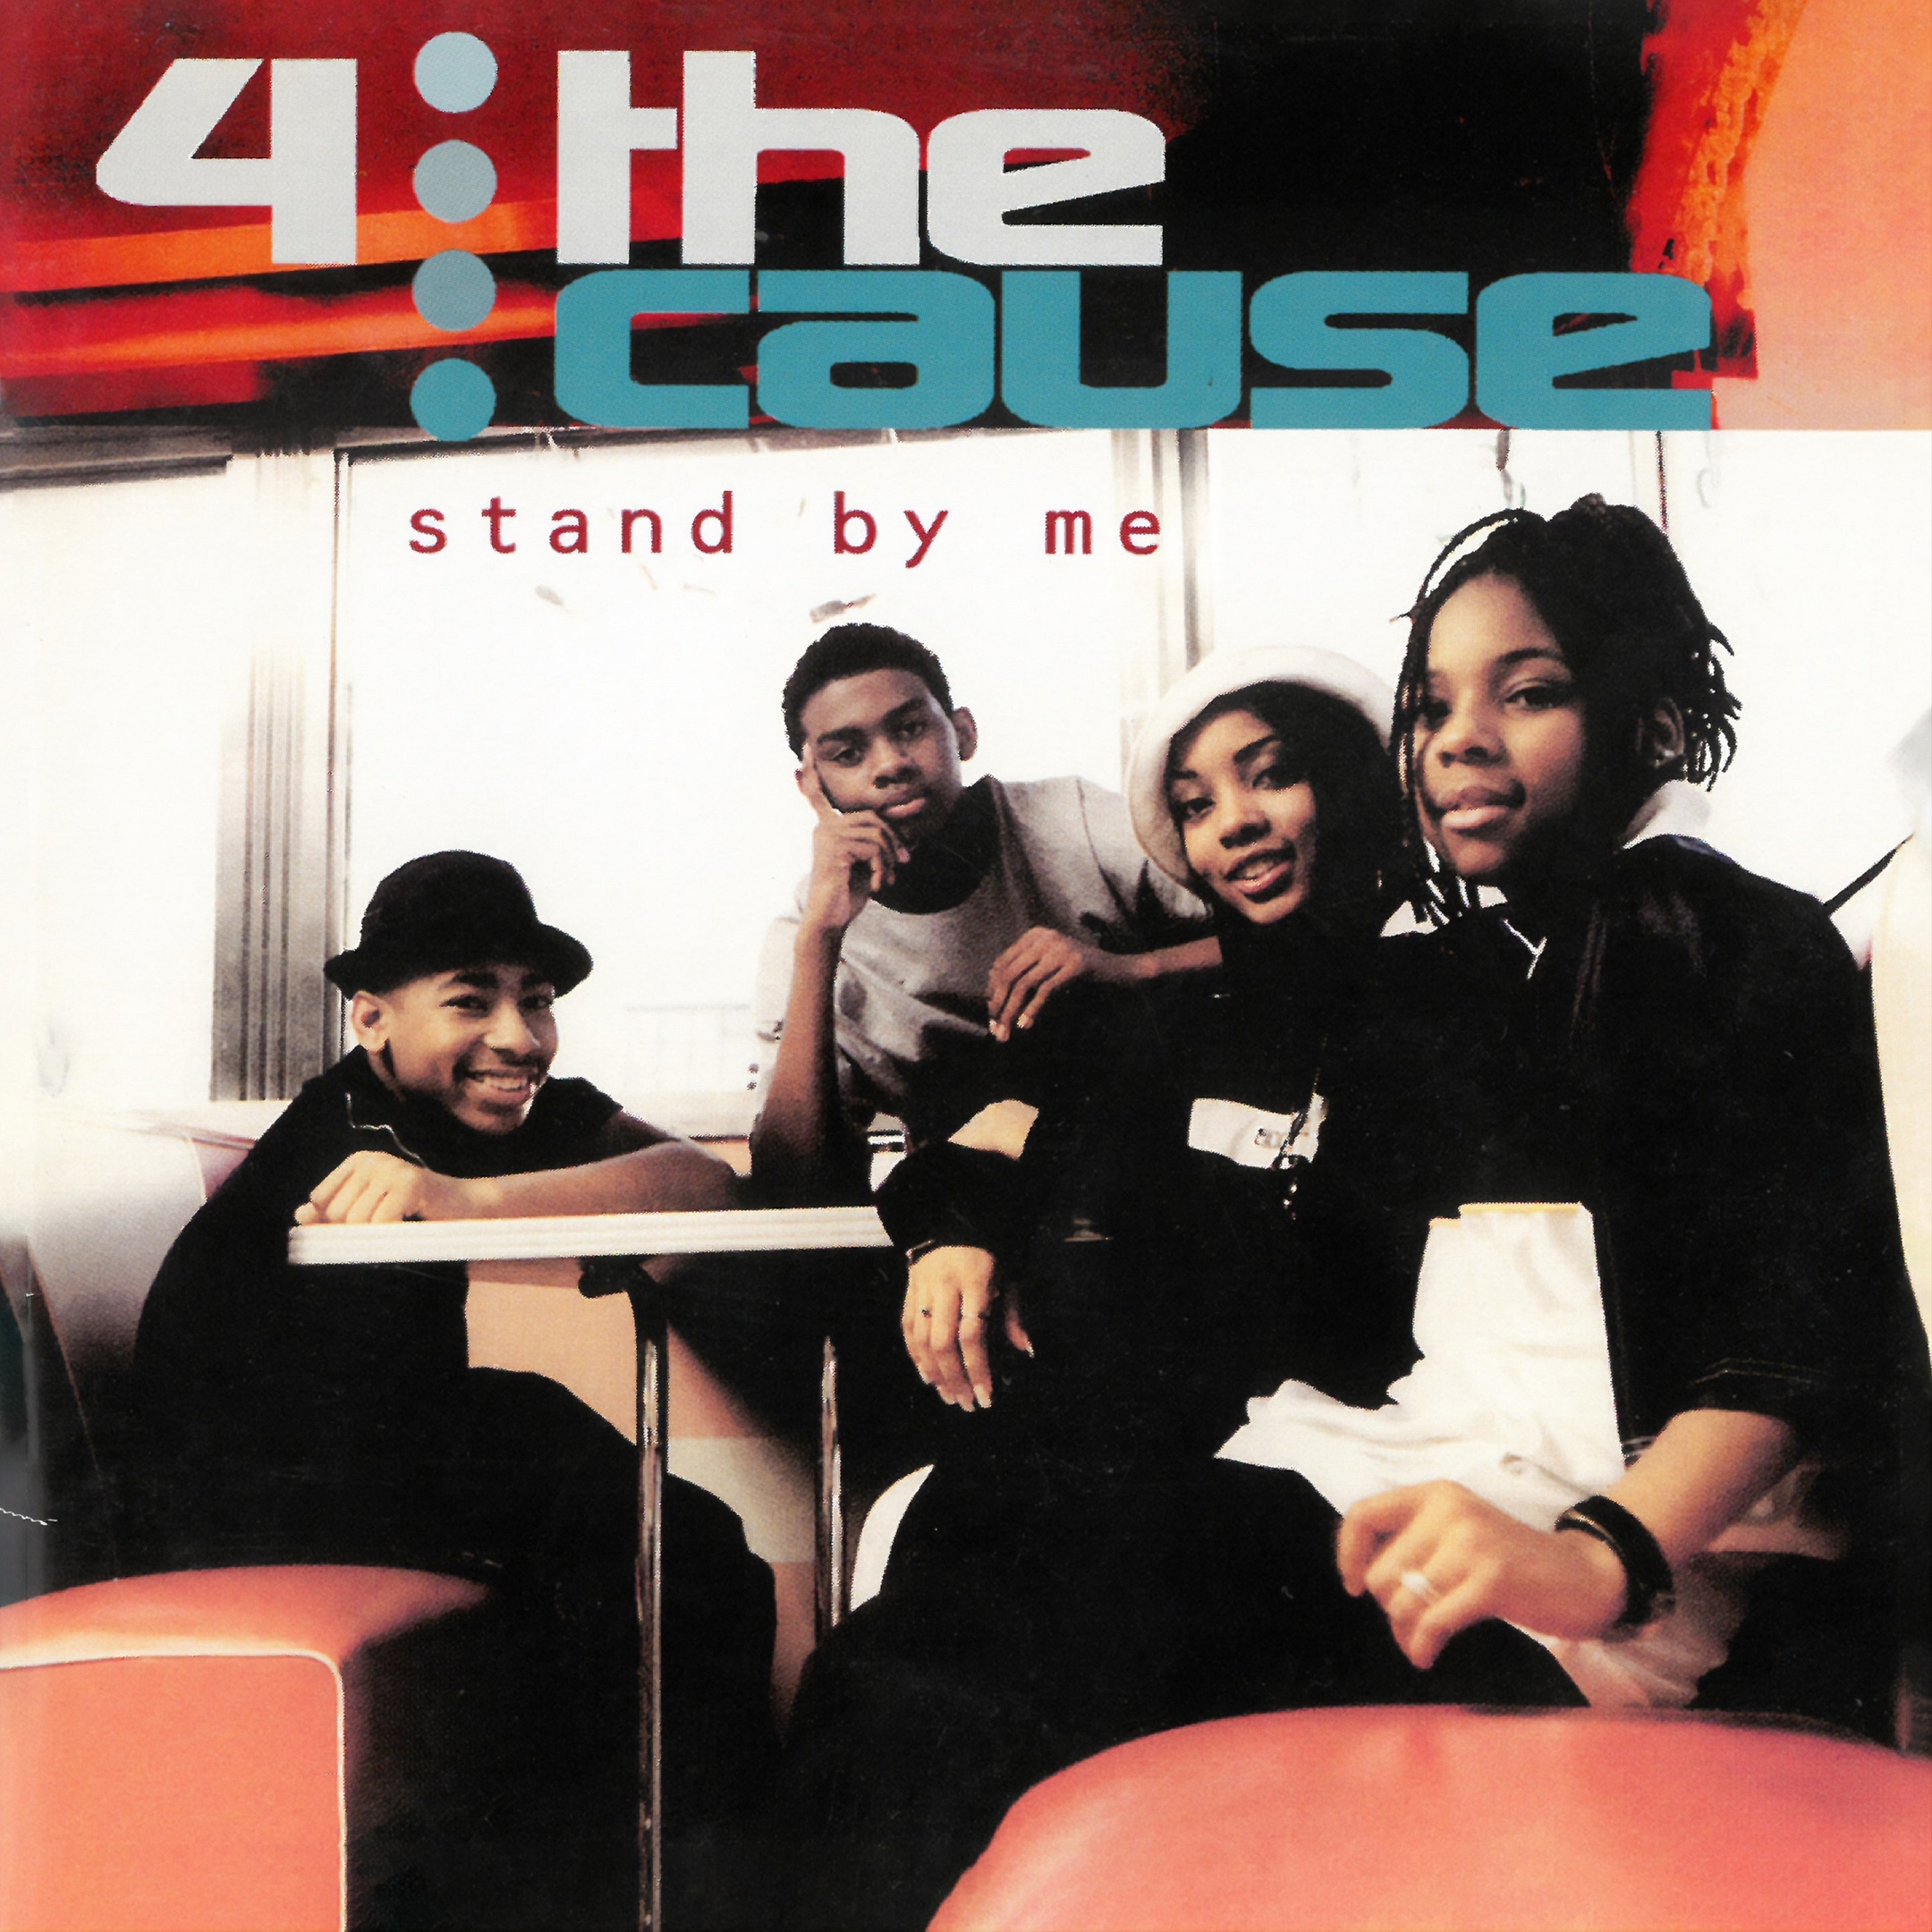 4 The Cause album Stand By Me